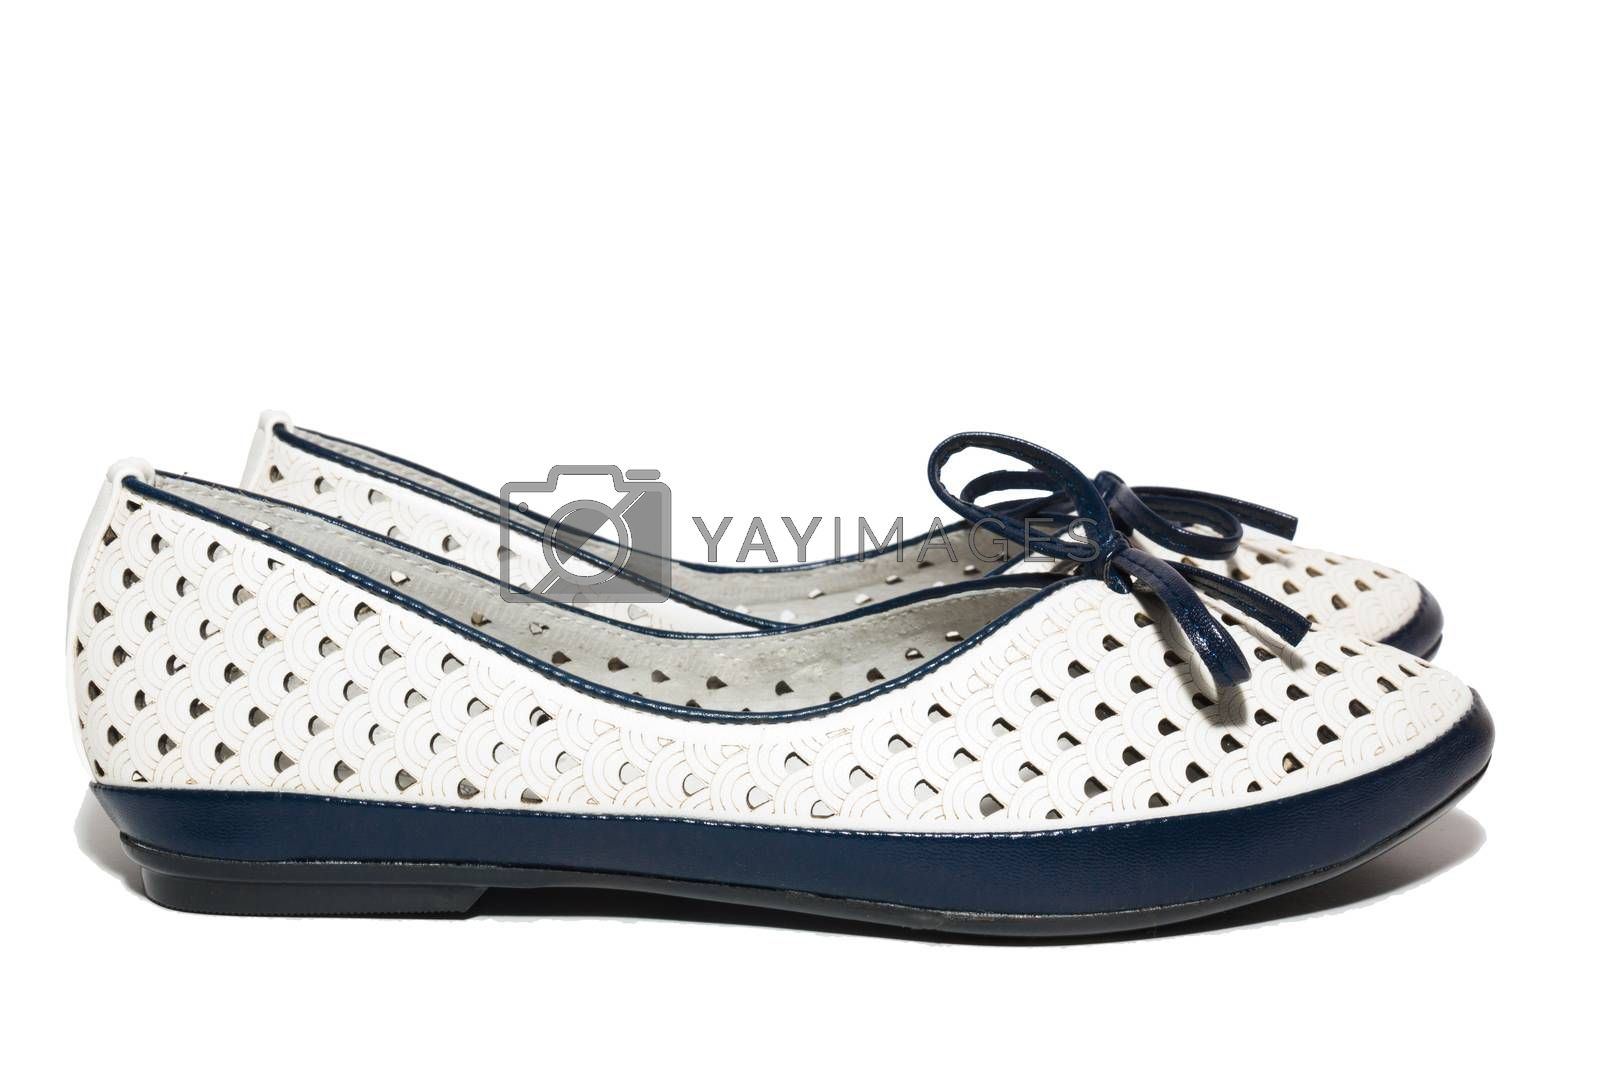 Royalty free image of shoes on a white background by AlexBush